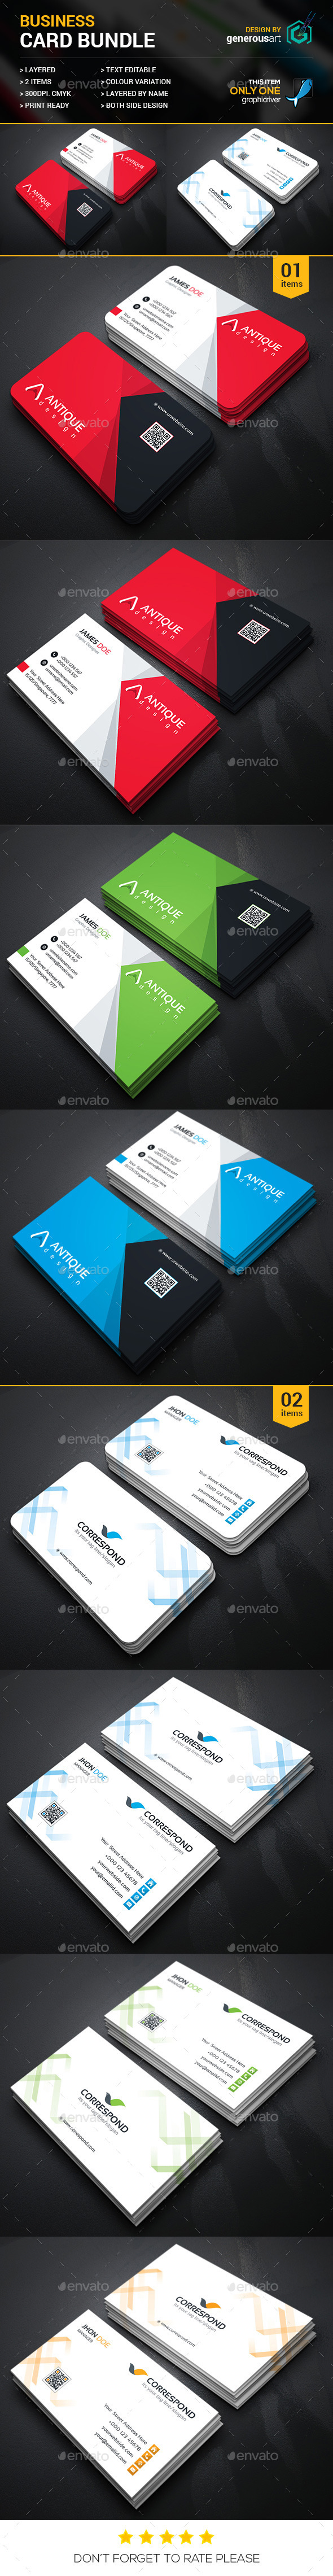 Business Card Bundle 2 in 1 2